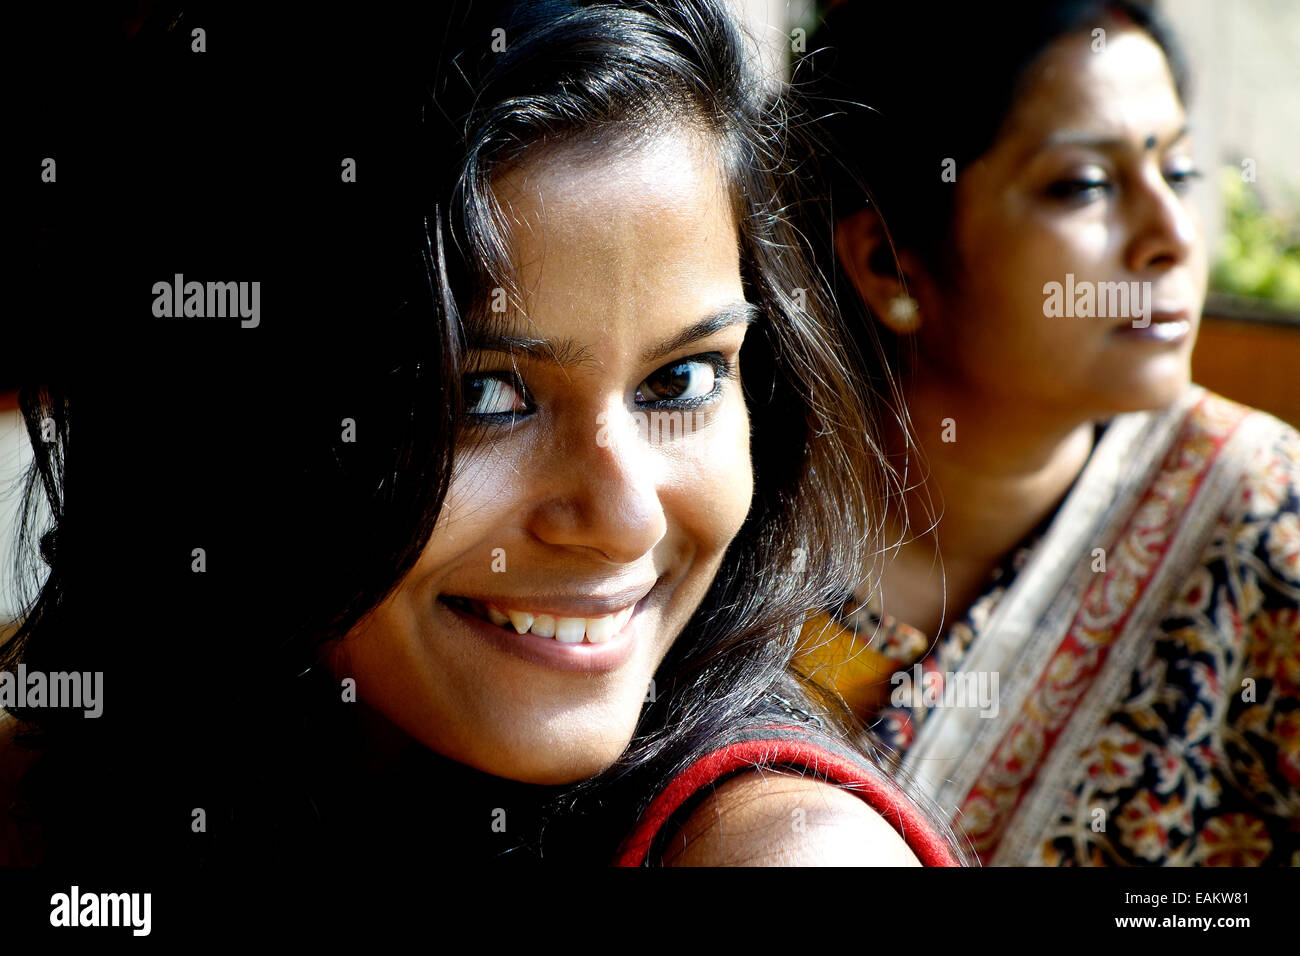 women,beautiful,big eyes,Bengali,Indian,sultry,smiling,attractive,ladies,family - Stock Image